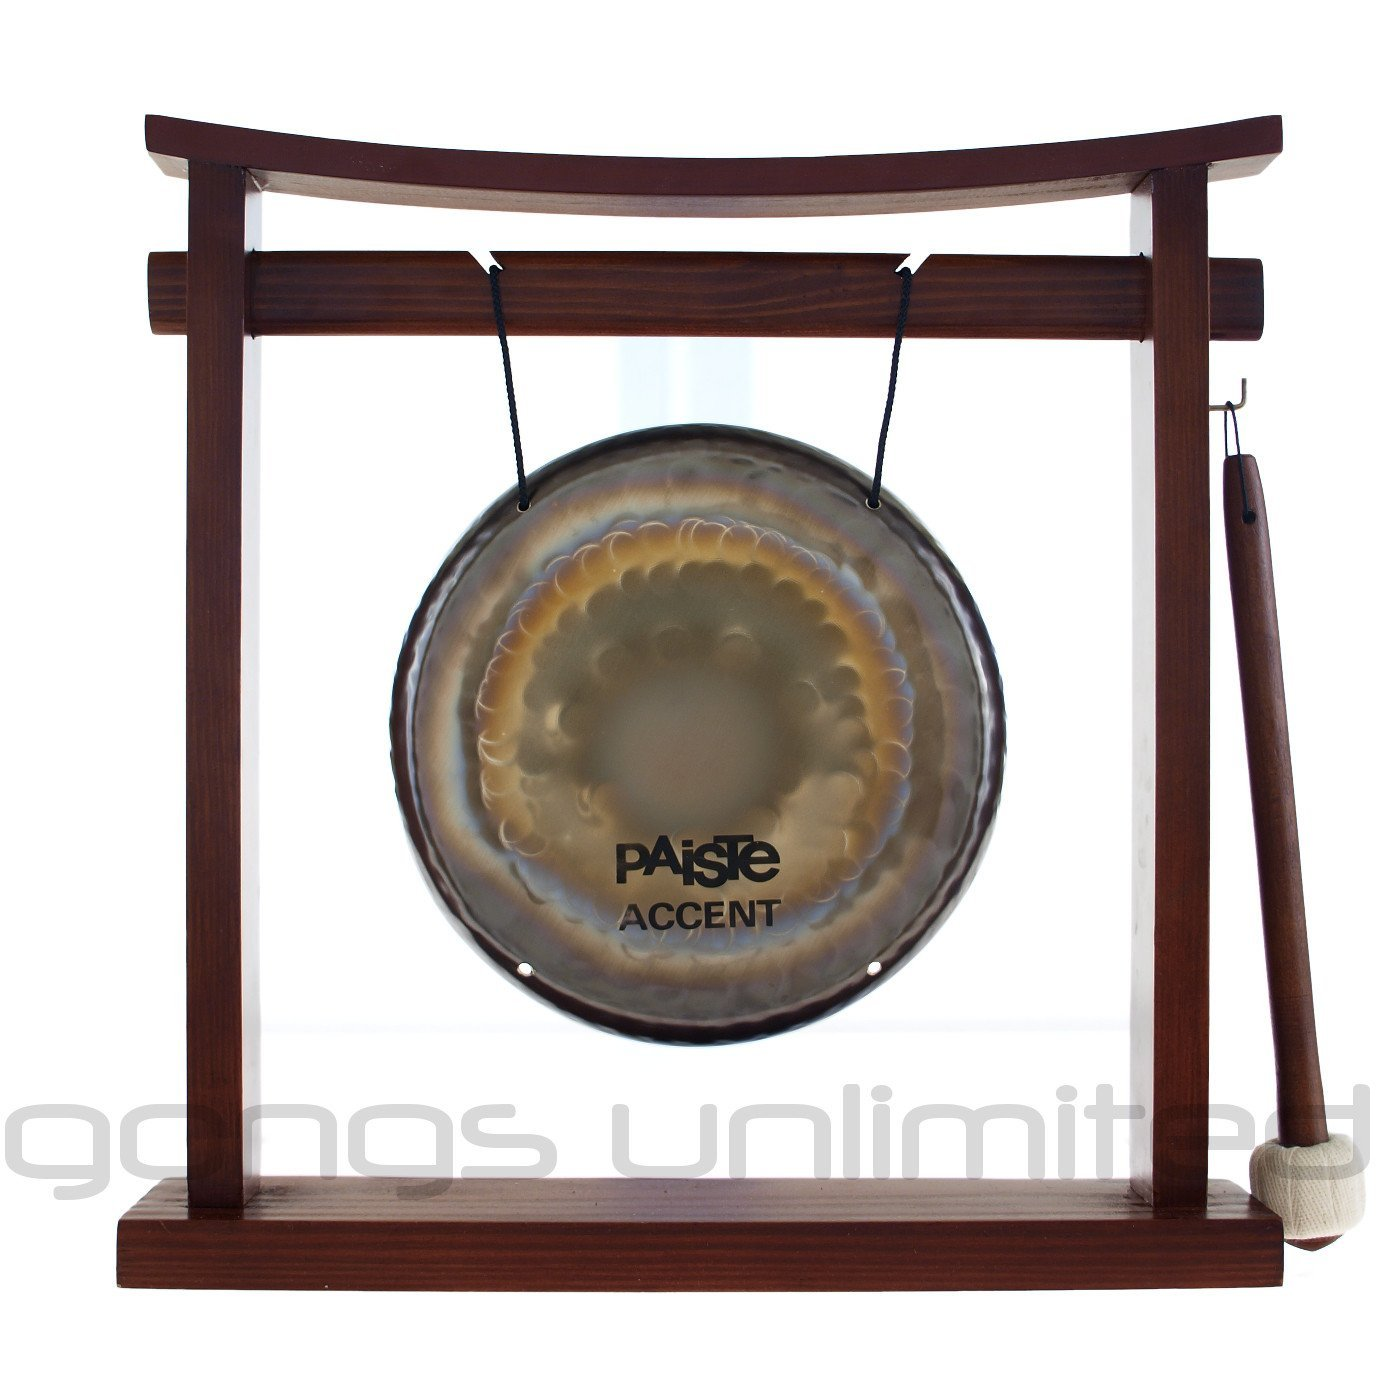 Paiste Accent Gongs on Stands by Unlimited